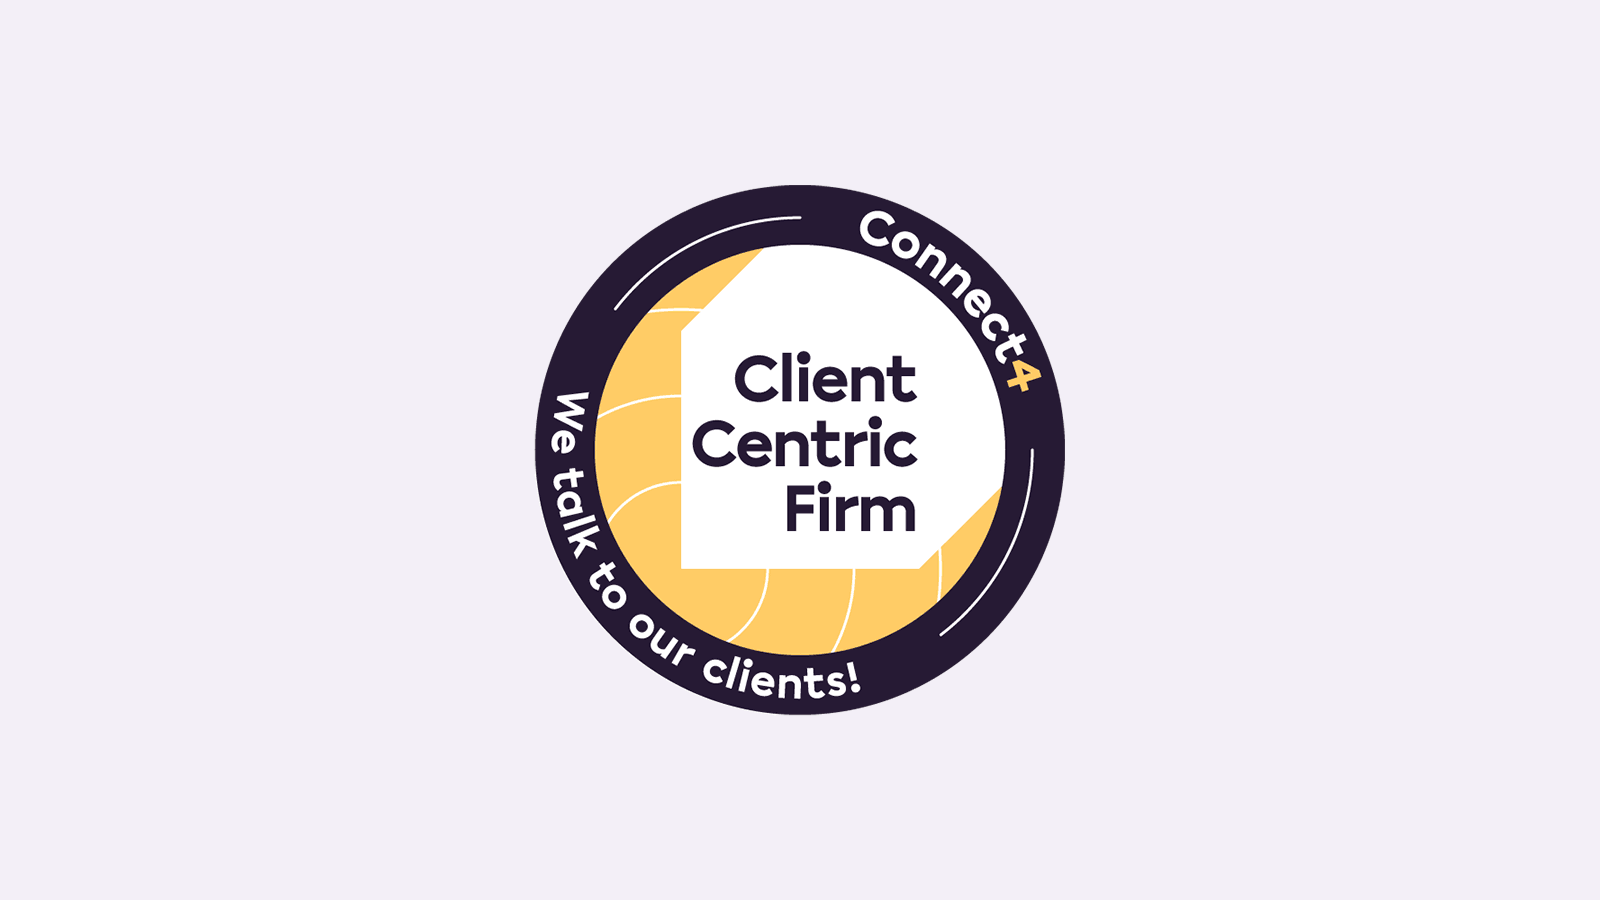 Client Centric Firm badge